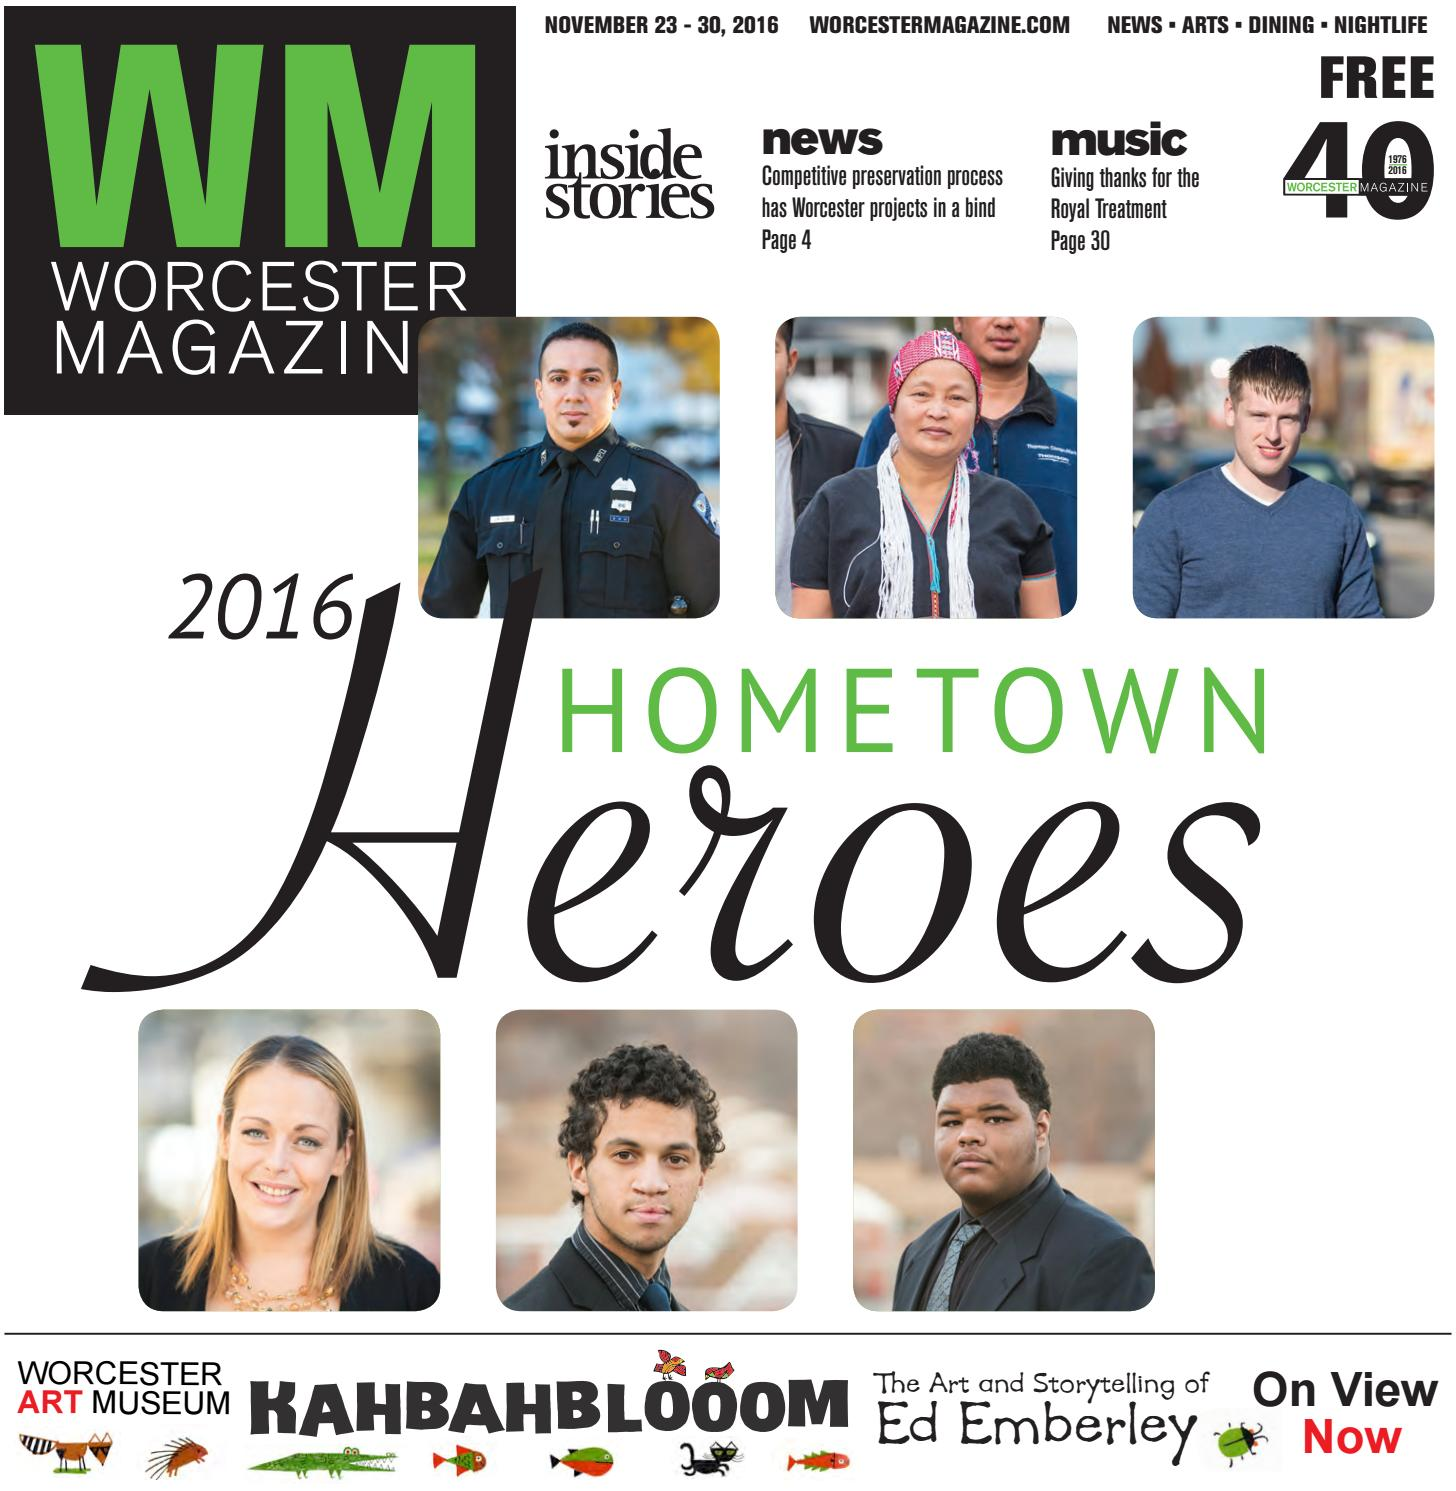 Worcester Magazine November 23 30 2016 by Worcester Magazine issuu